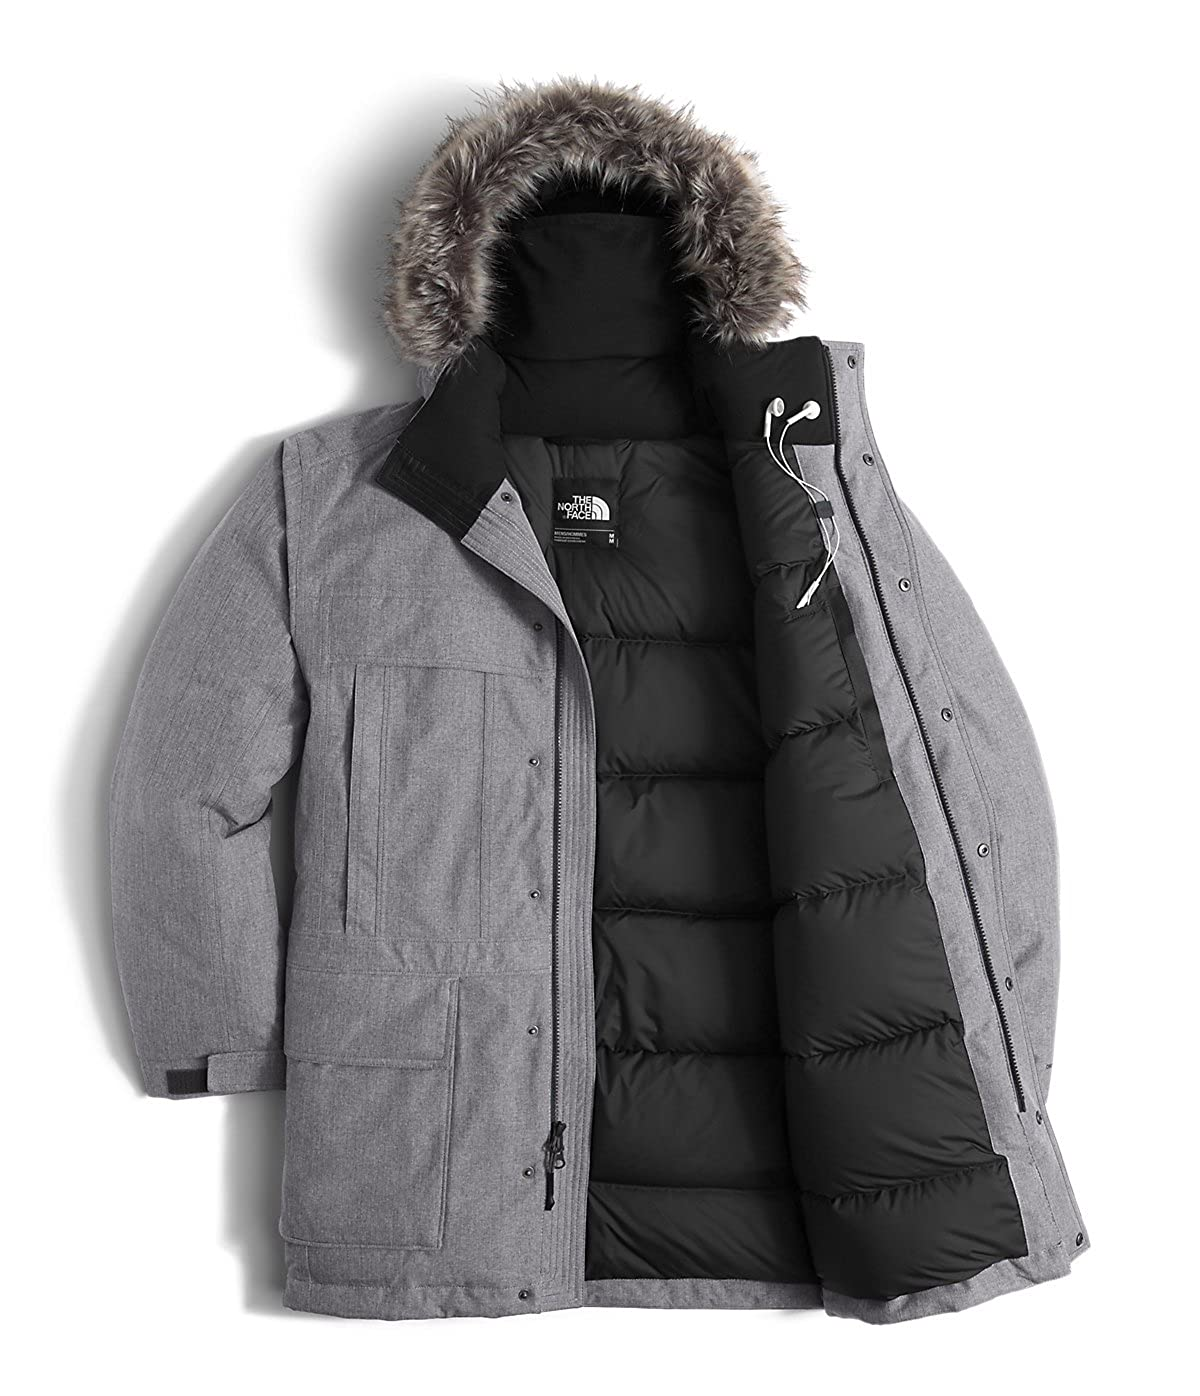 North face men's mcmurdo parka black